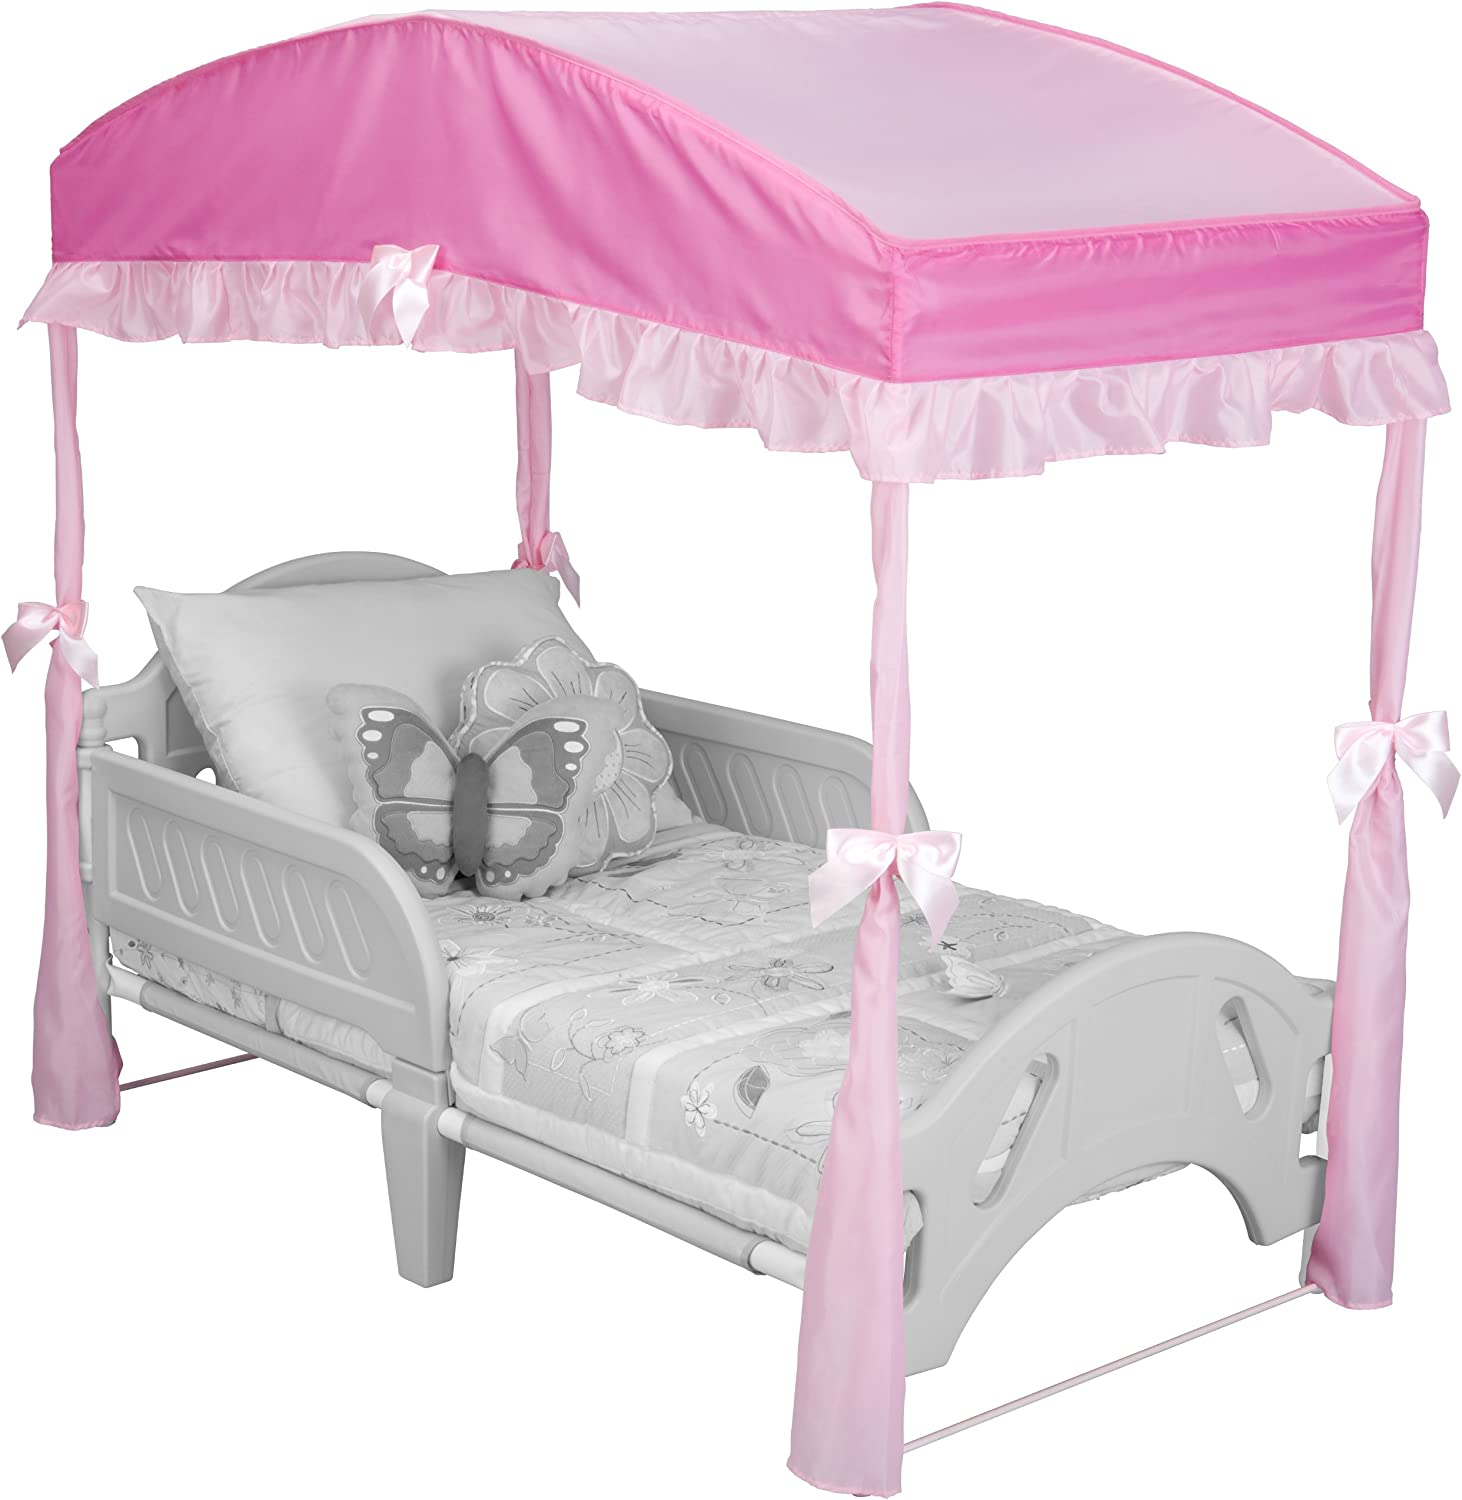 - Delta Children Girls Canopy For Toddler Bed, Pink: Amazon.ca: Baby